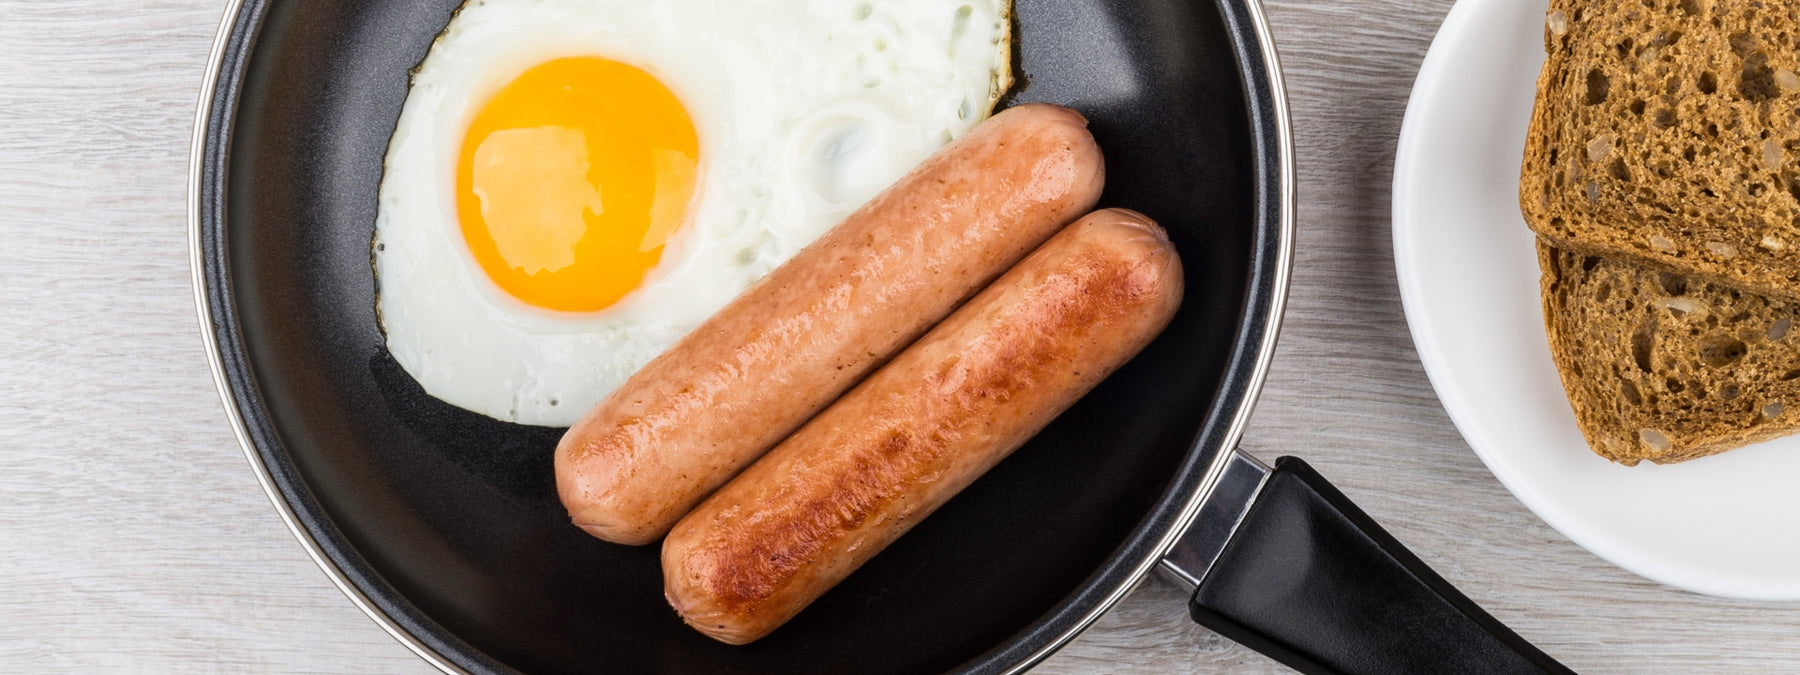 Are Non-Stick Frying Pans Shrinking Your Penis?